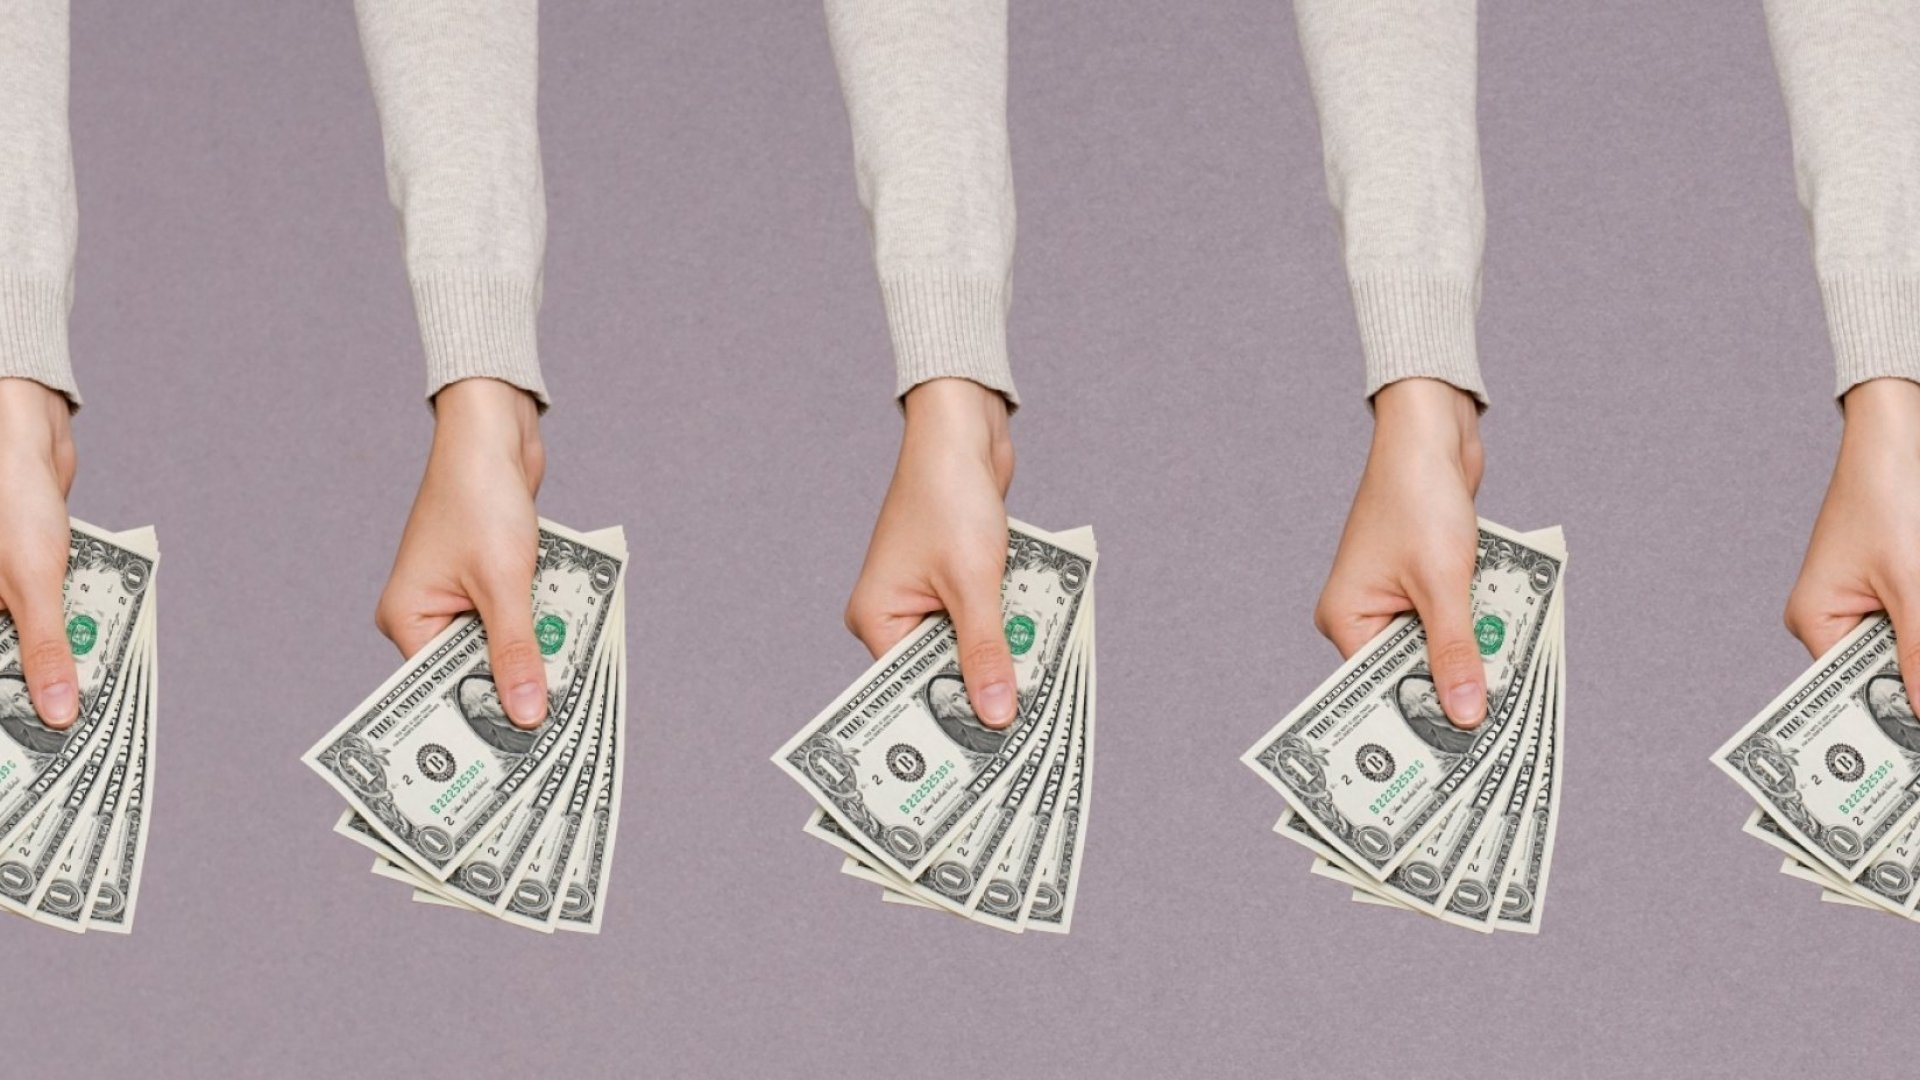 7 Questions That Will Help Tell You If Crowdfunding Is Right for You